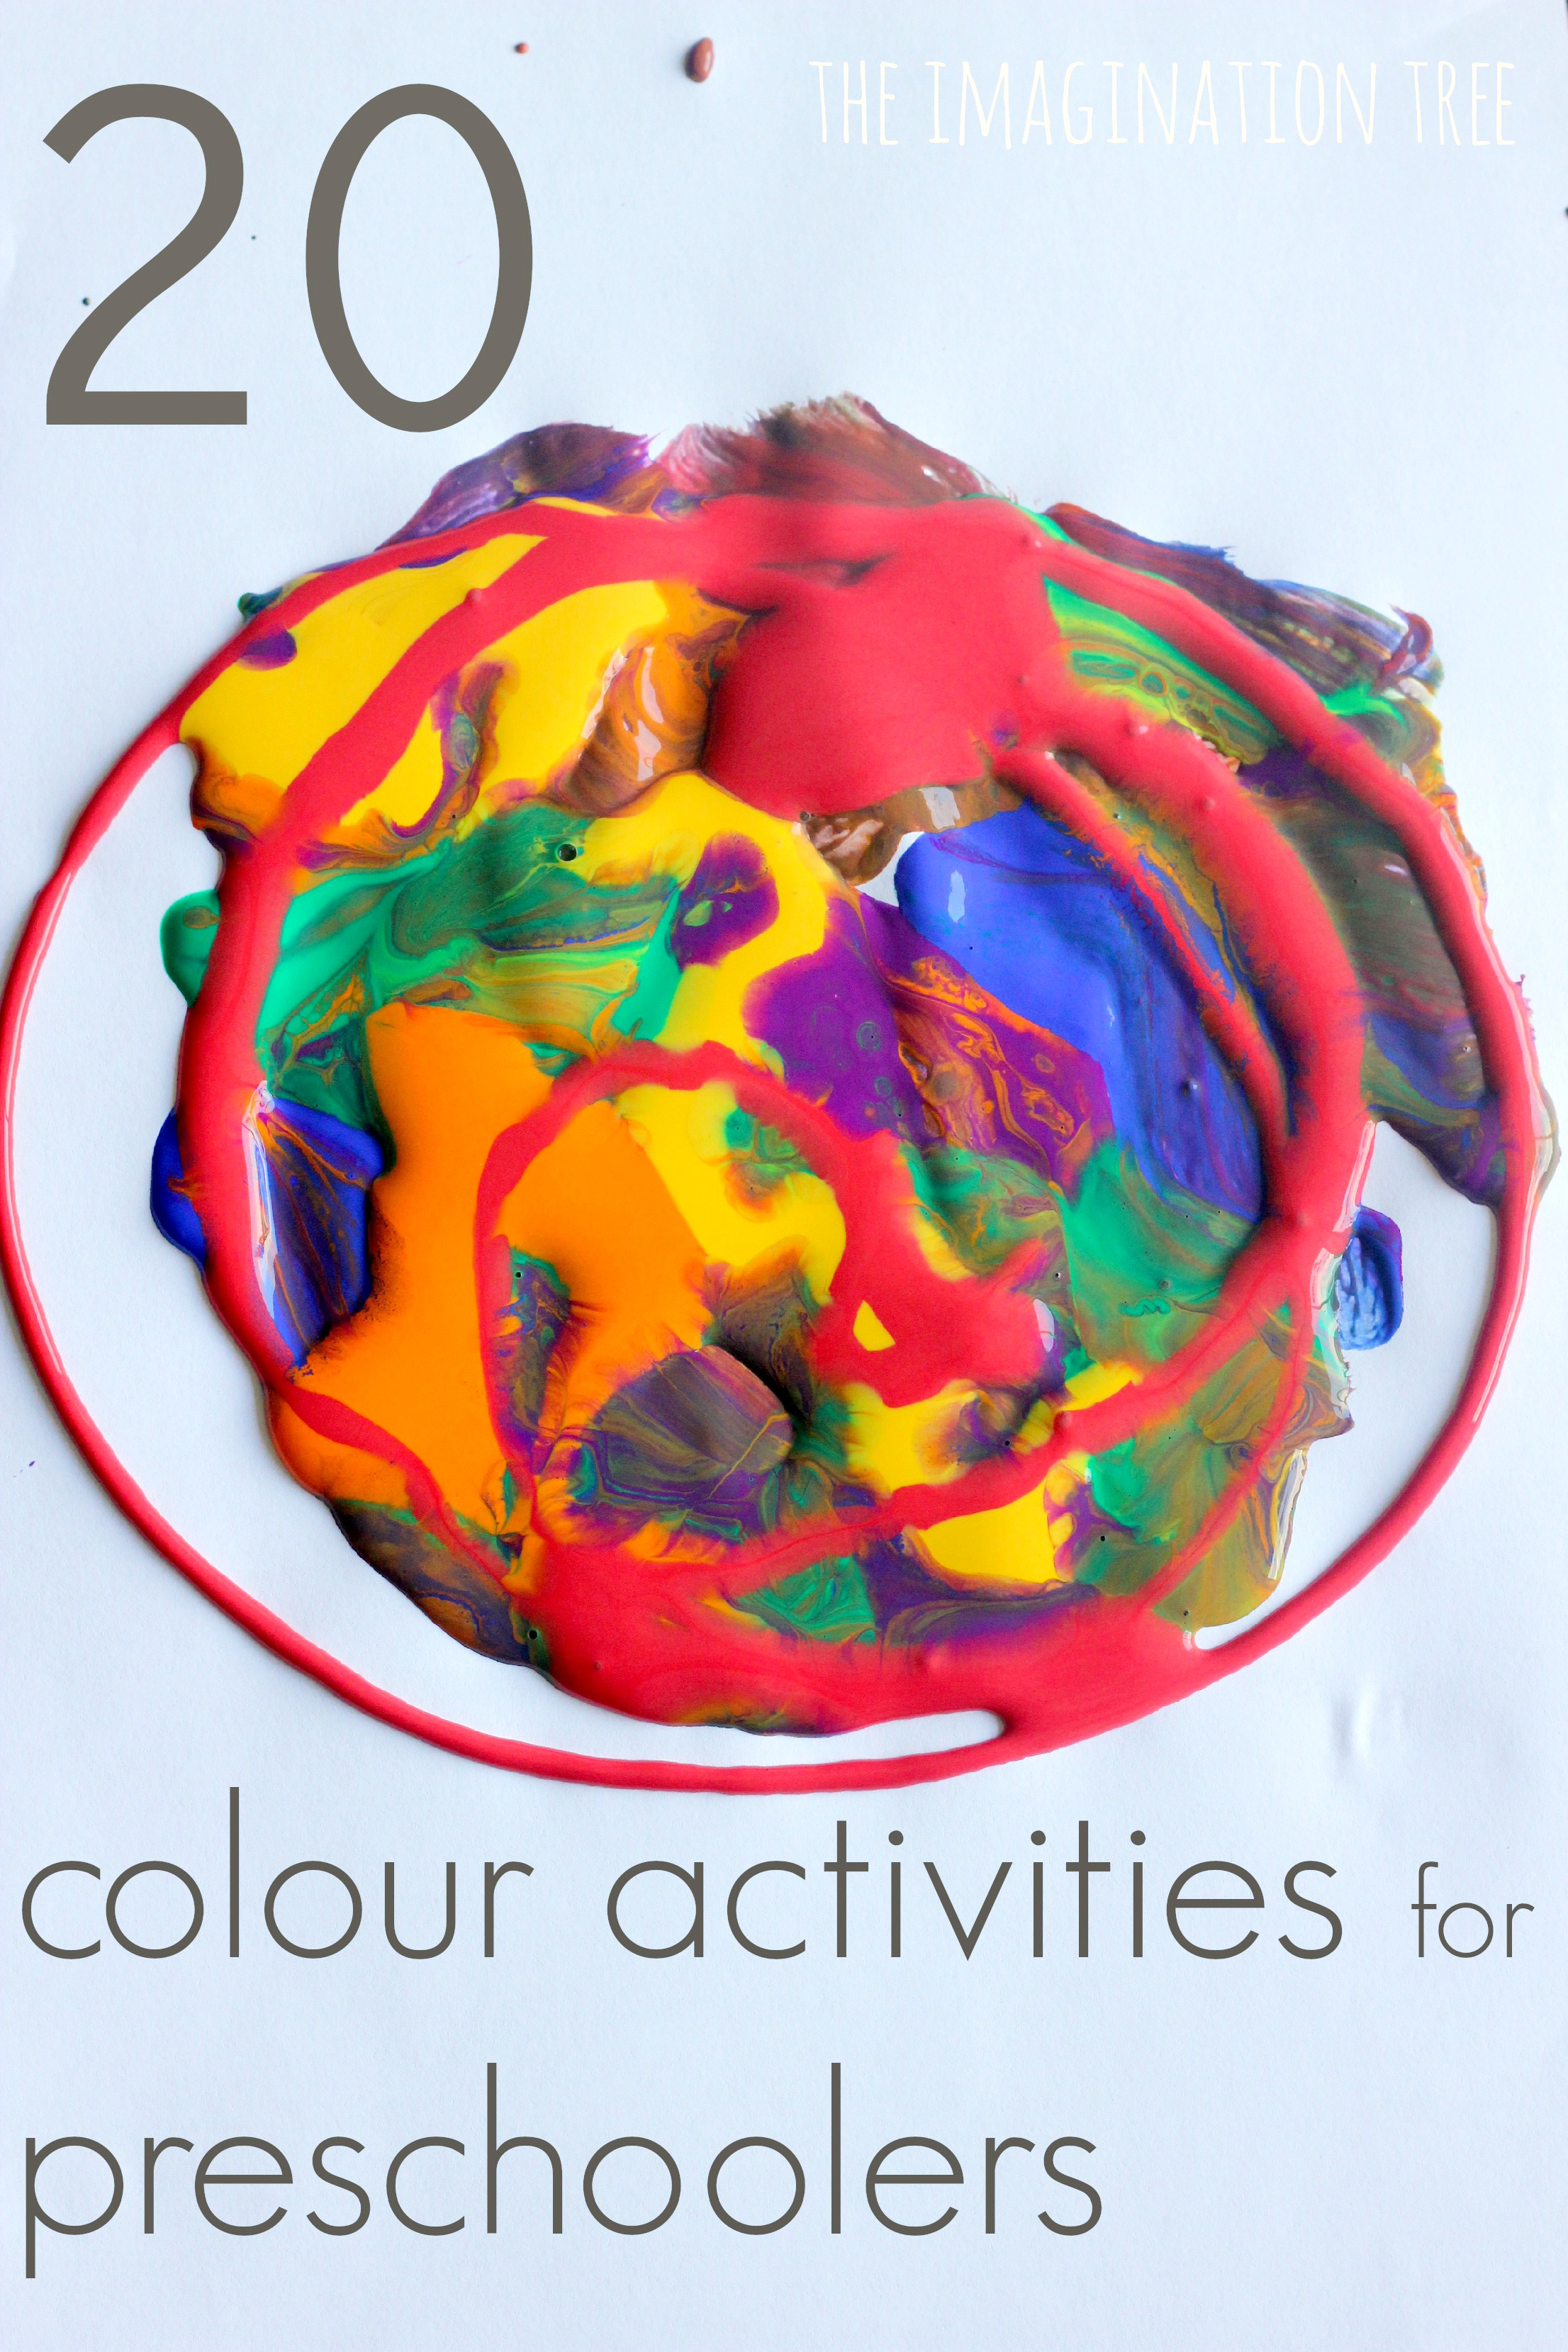 20 colour activities for preschoolers - Color Activity For Preschool